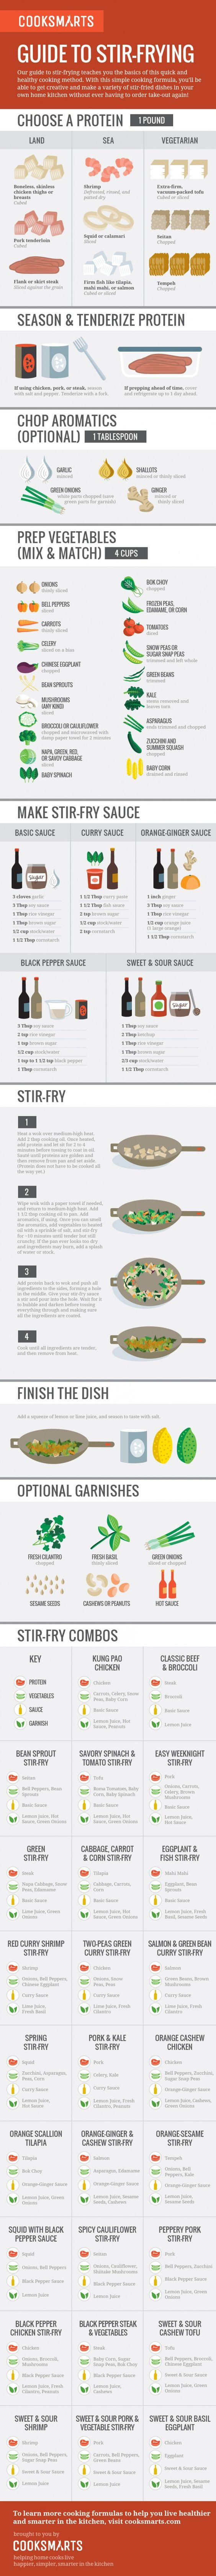 guide-to-stirfrying